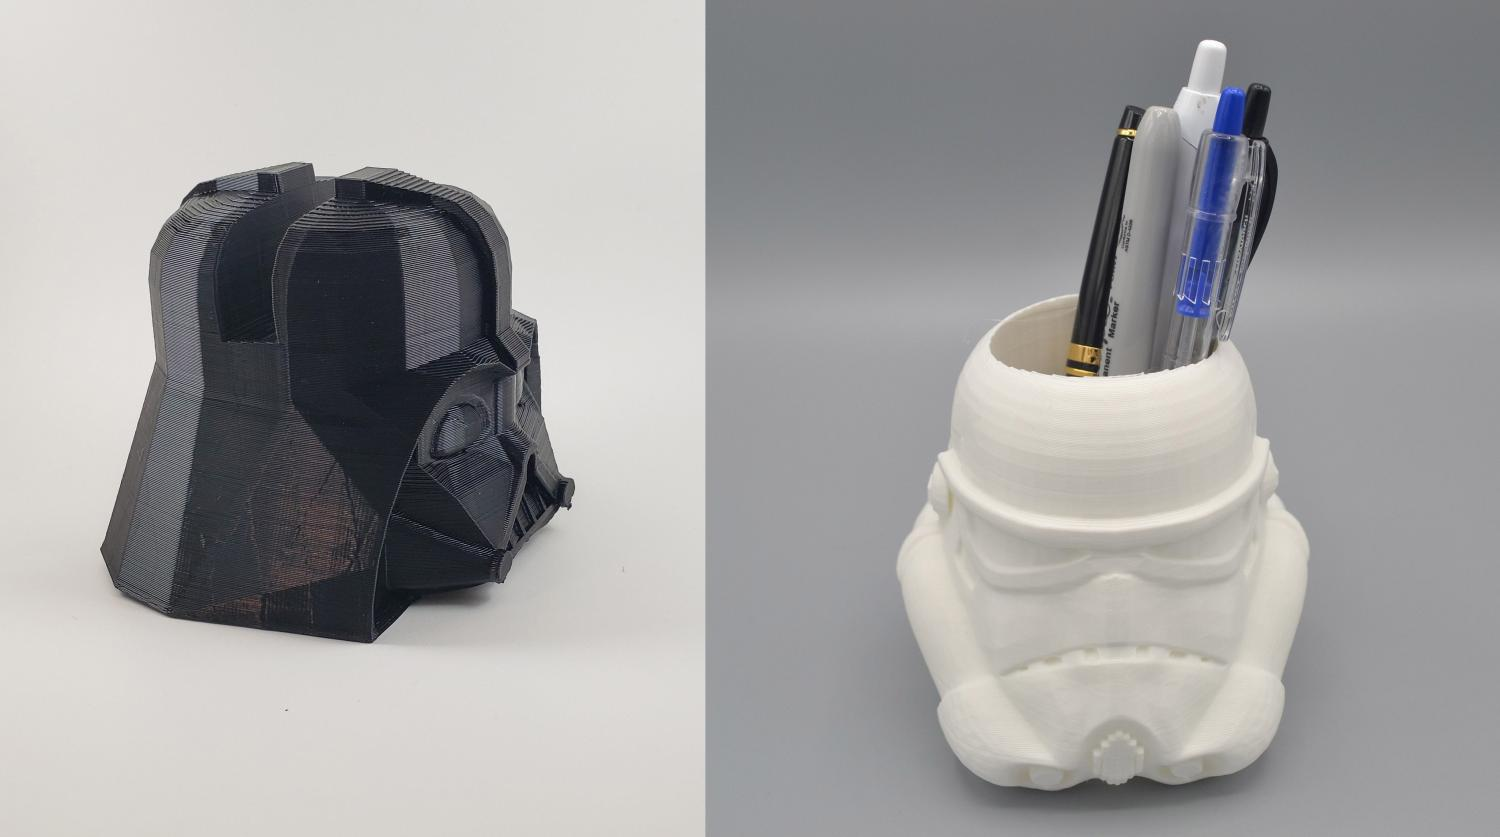 Darth Vader Helmet Smart Phone Holder - Stormtrooper helmet cup pen holder